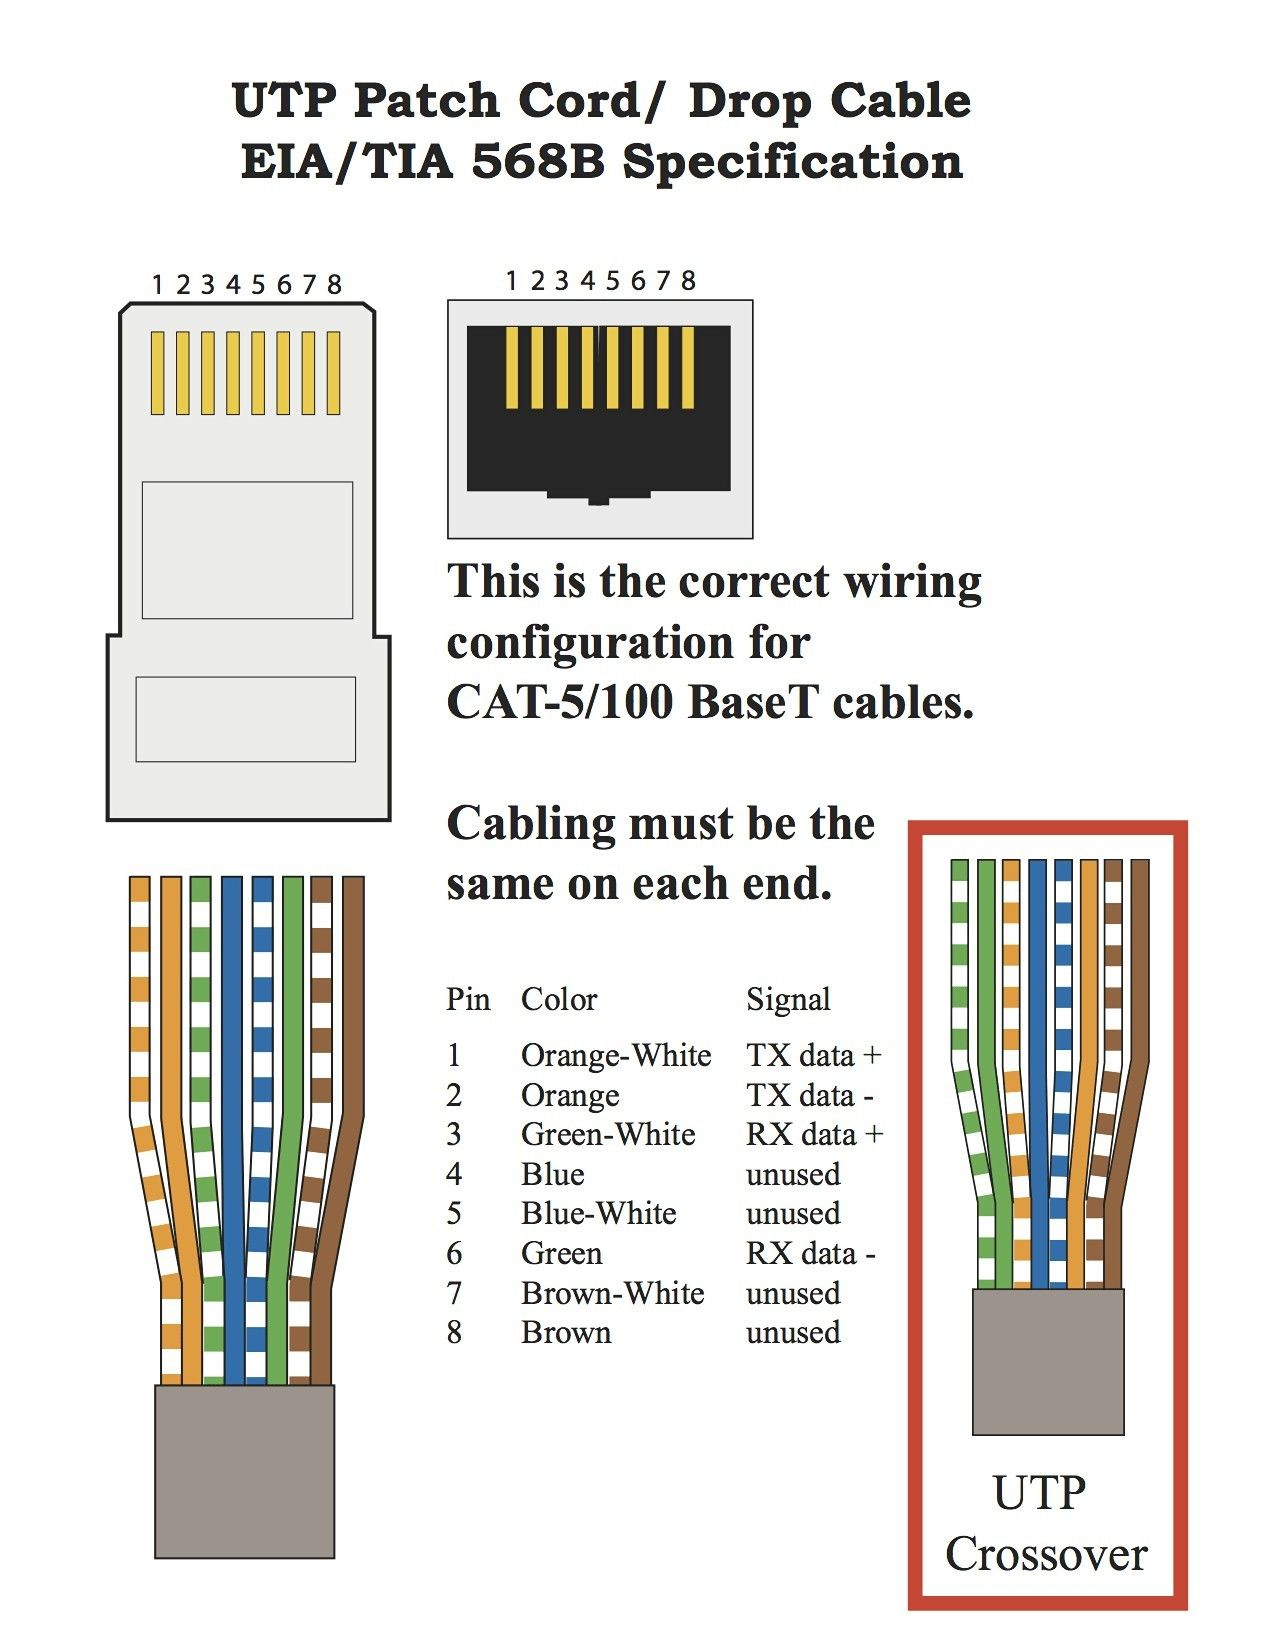 New Ethernet Network Wiring Diagram Diagram Diagramsample Diagramtemplate Wiringdiagram Diagramchart Worksheet Worksheettempl Diagram Wire Diagram Chart